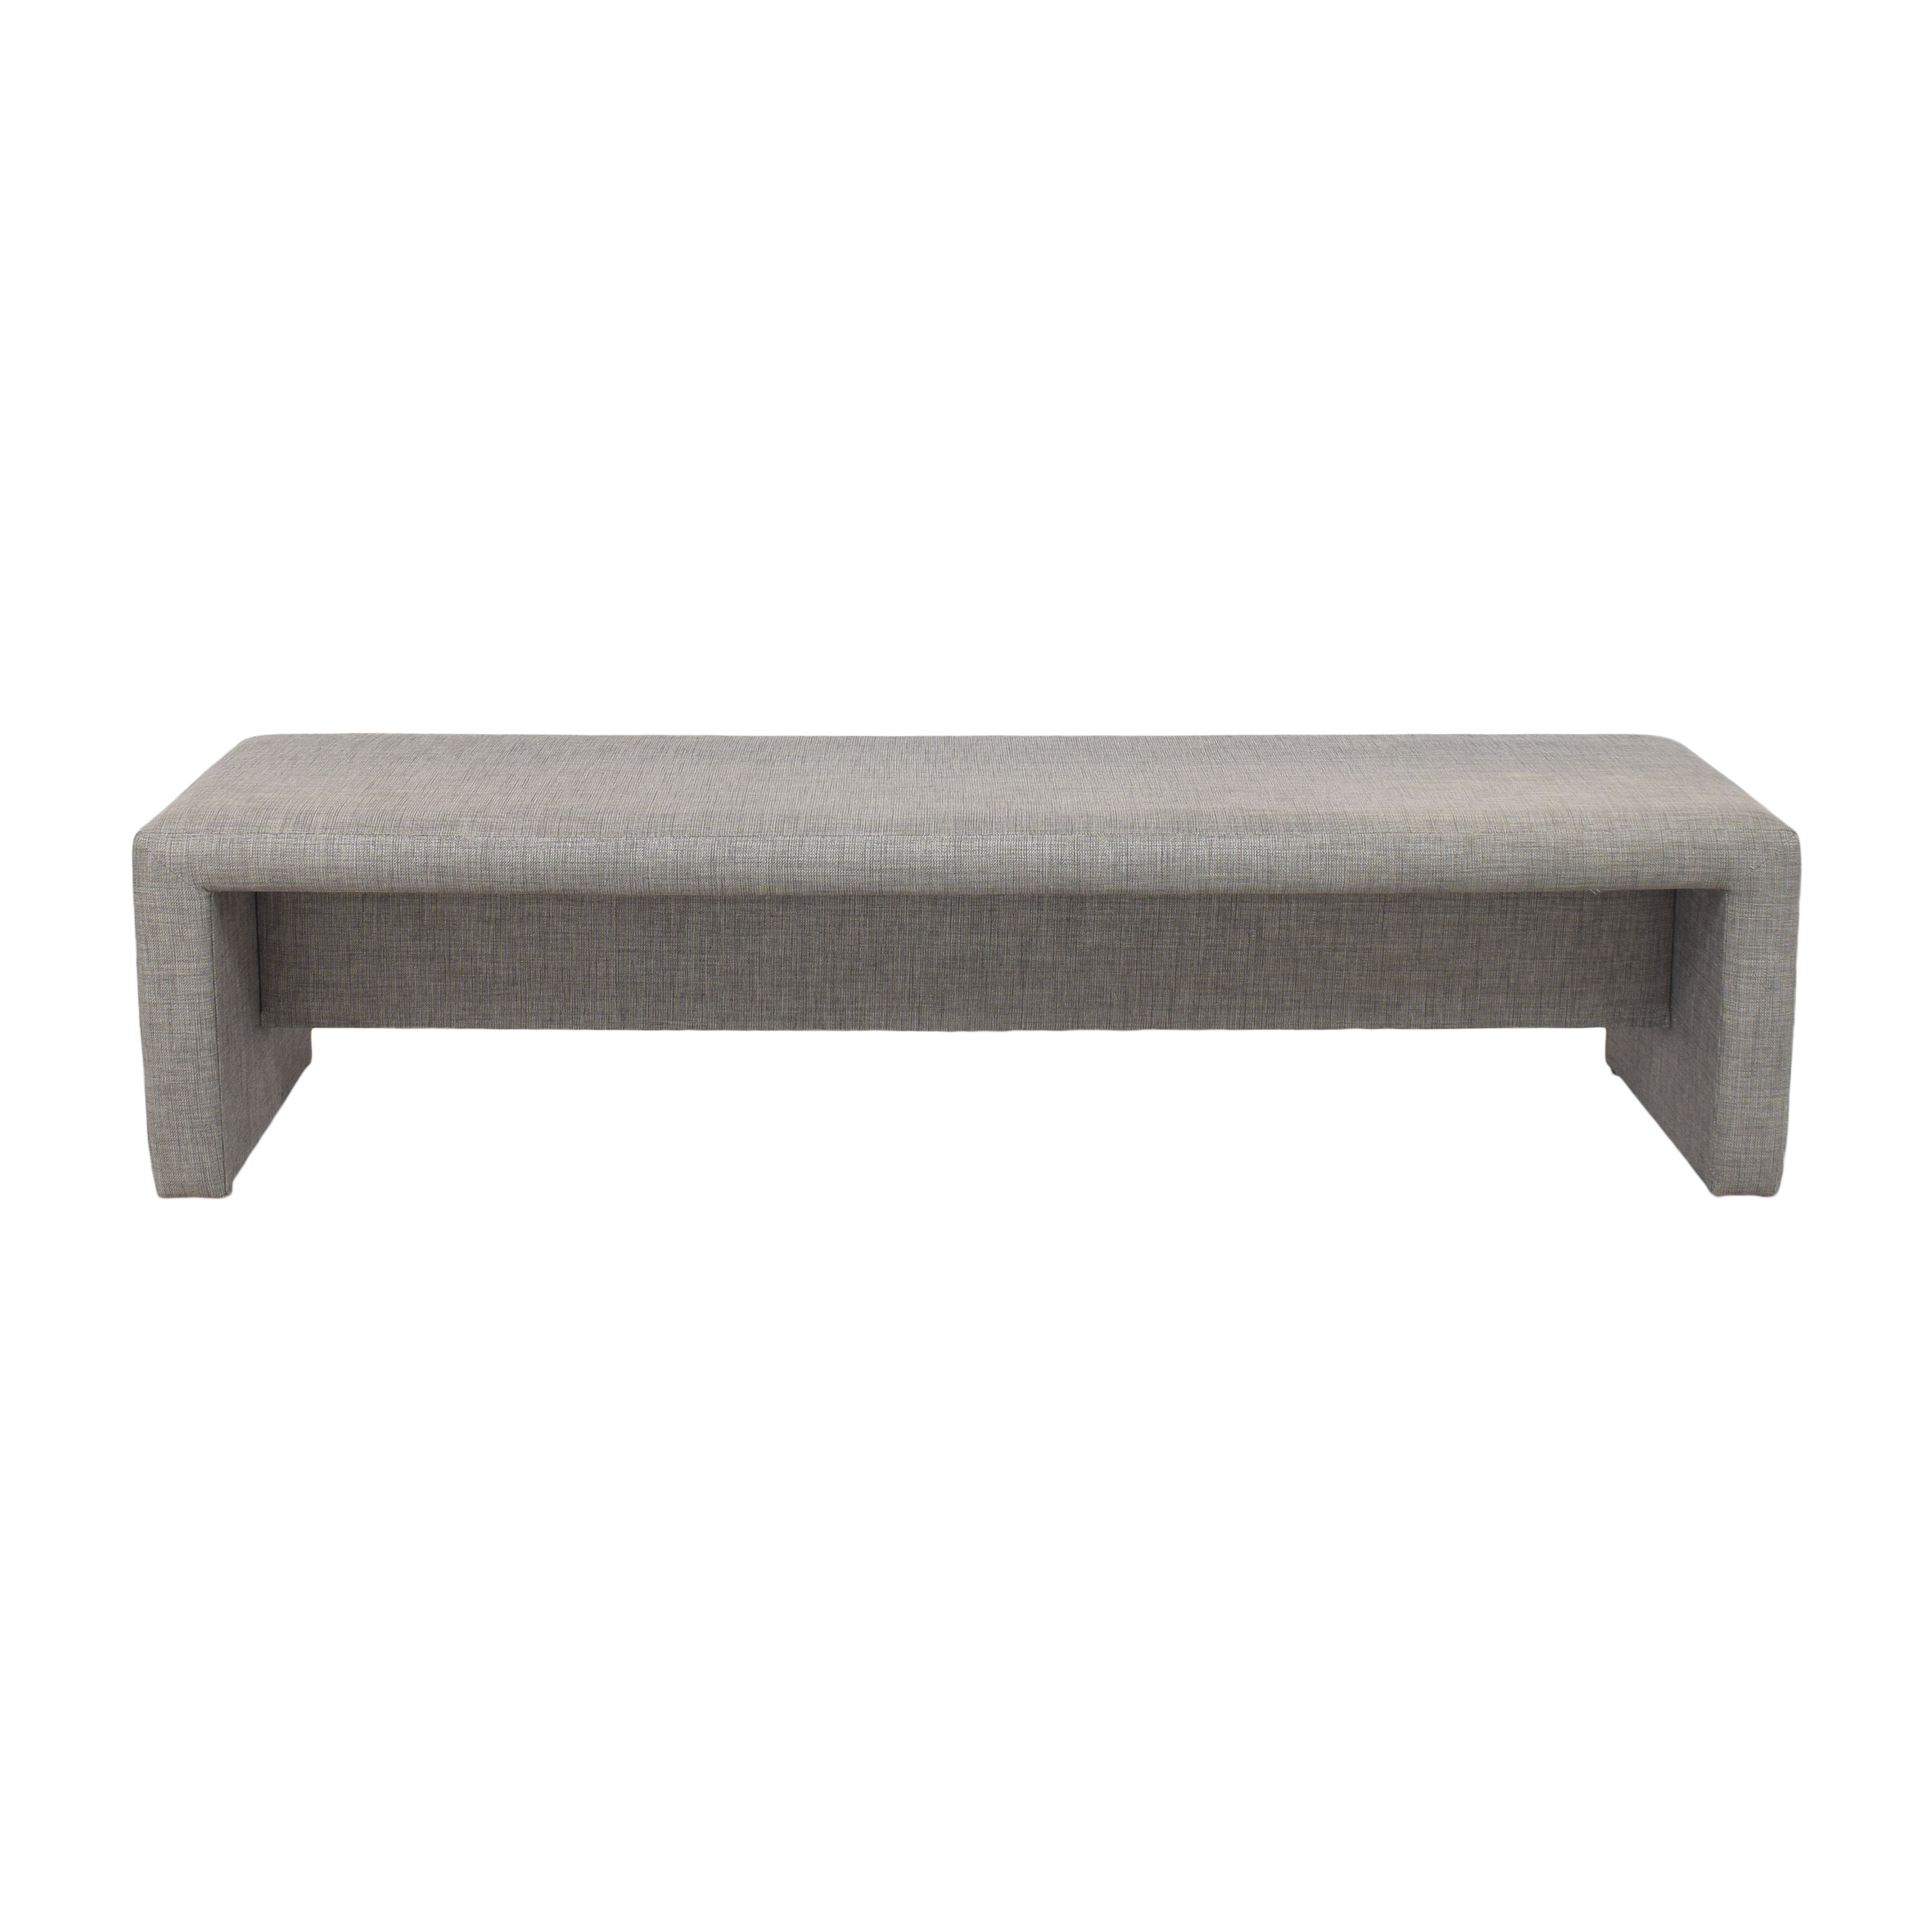 Waterfall Upholstered Bench on sale